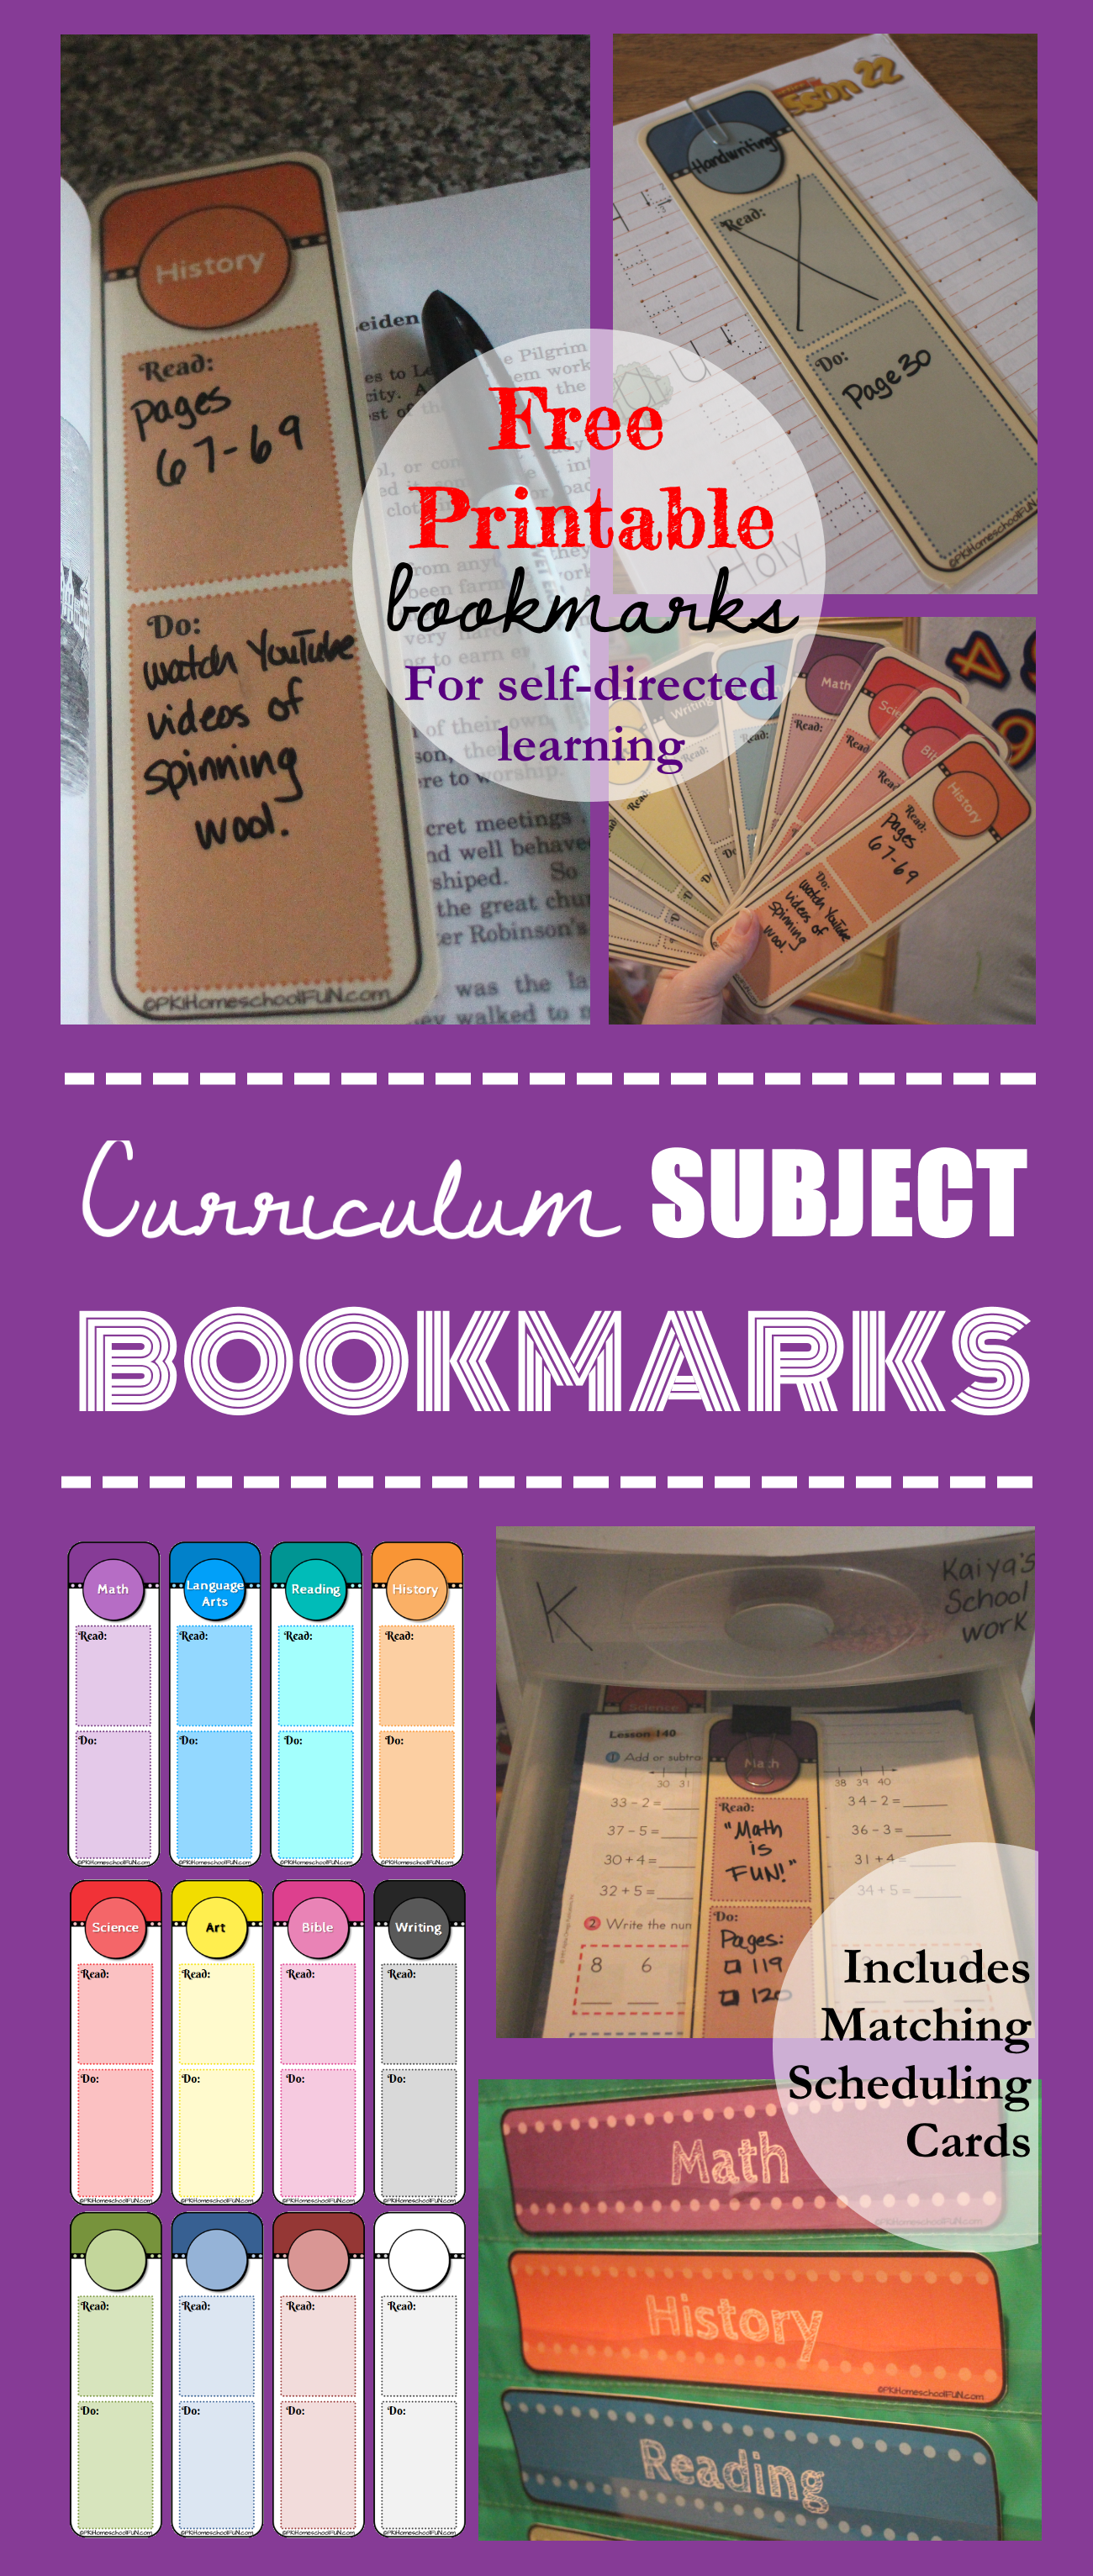 Daily Curriculum Bookmark Guides | Educación en casa y En casa